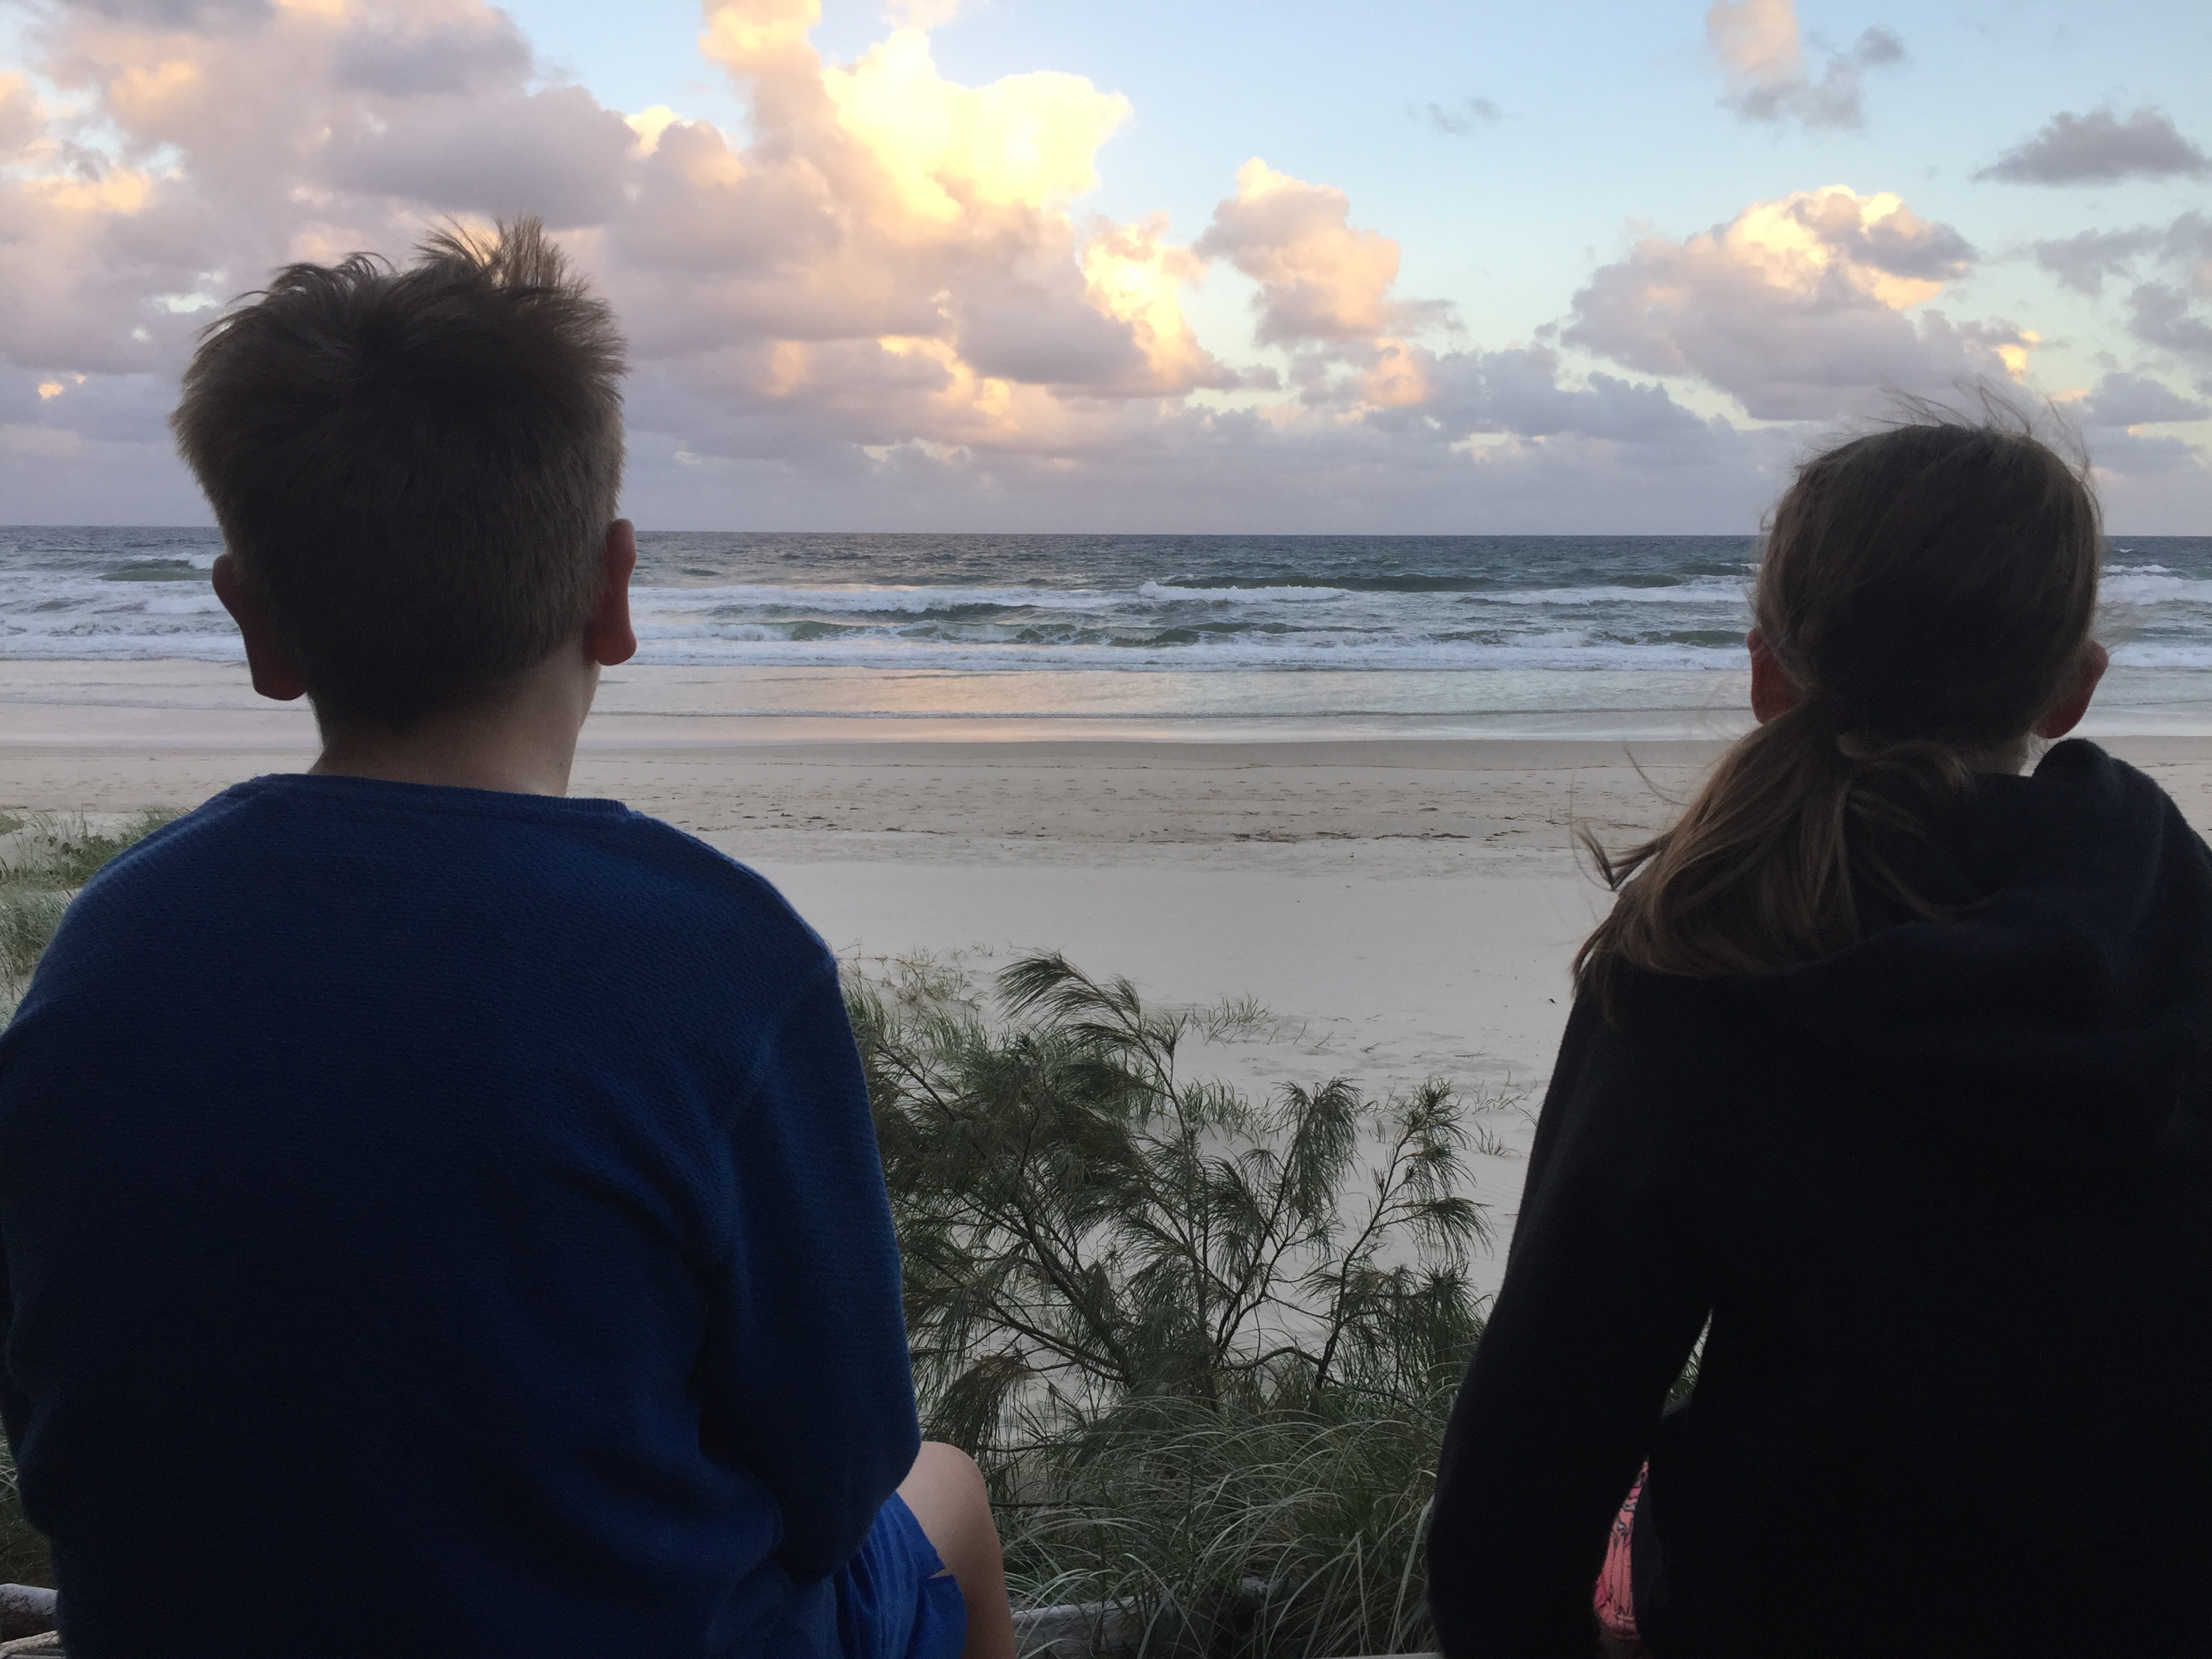 Kids quiet time casuarina beach Australia